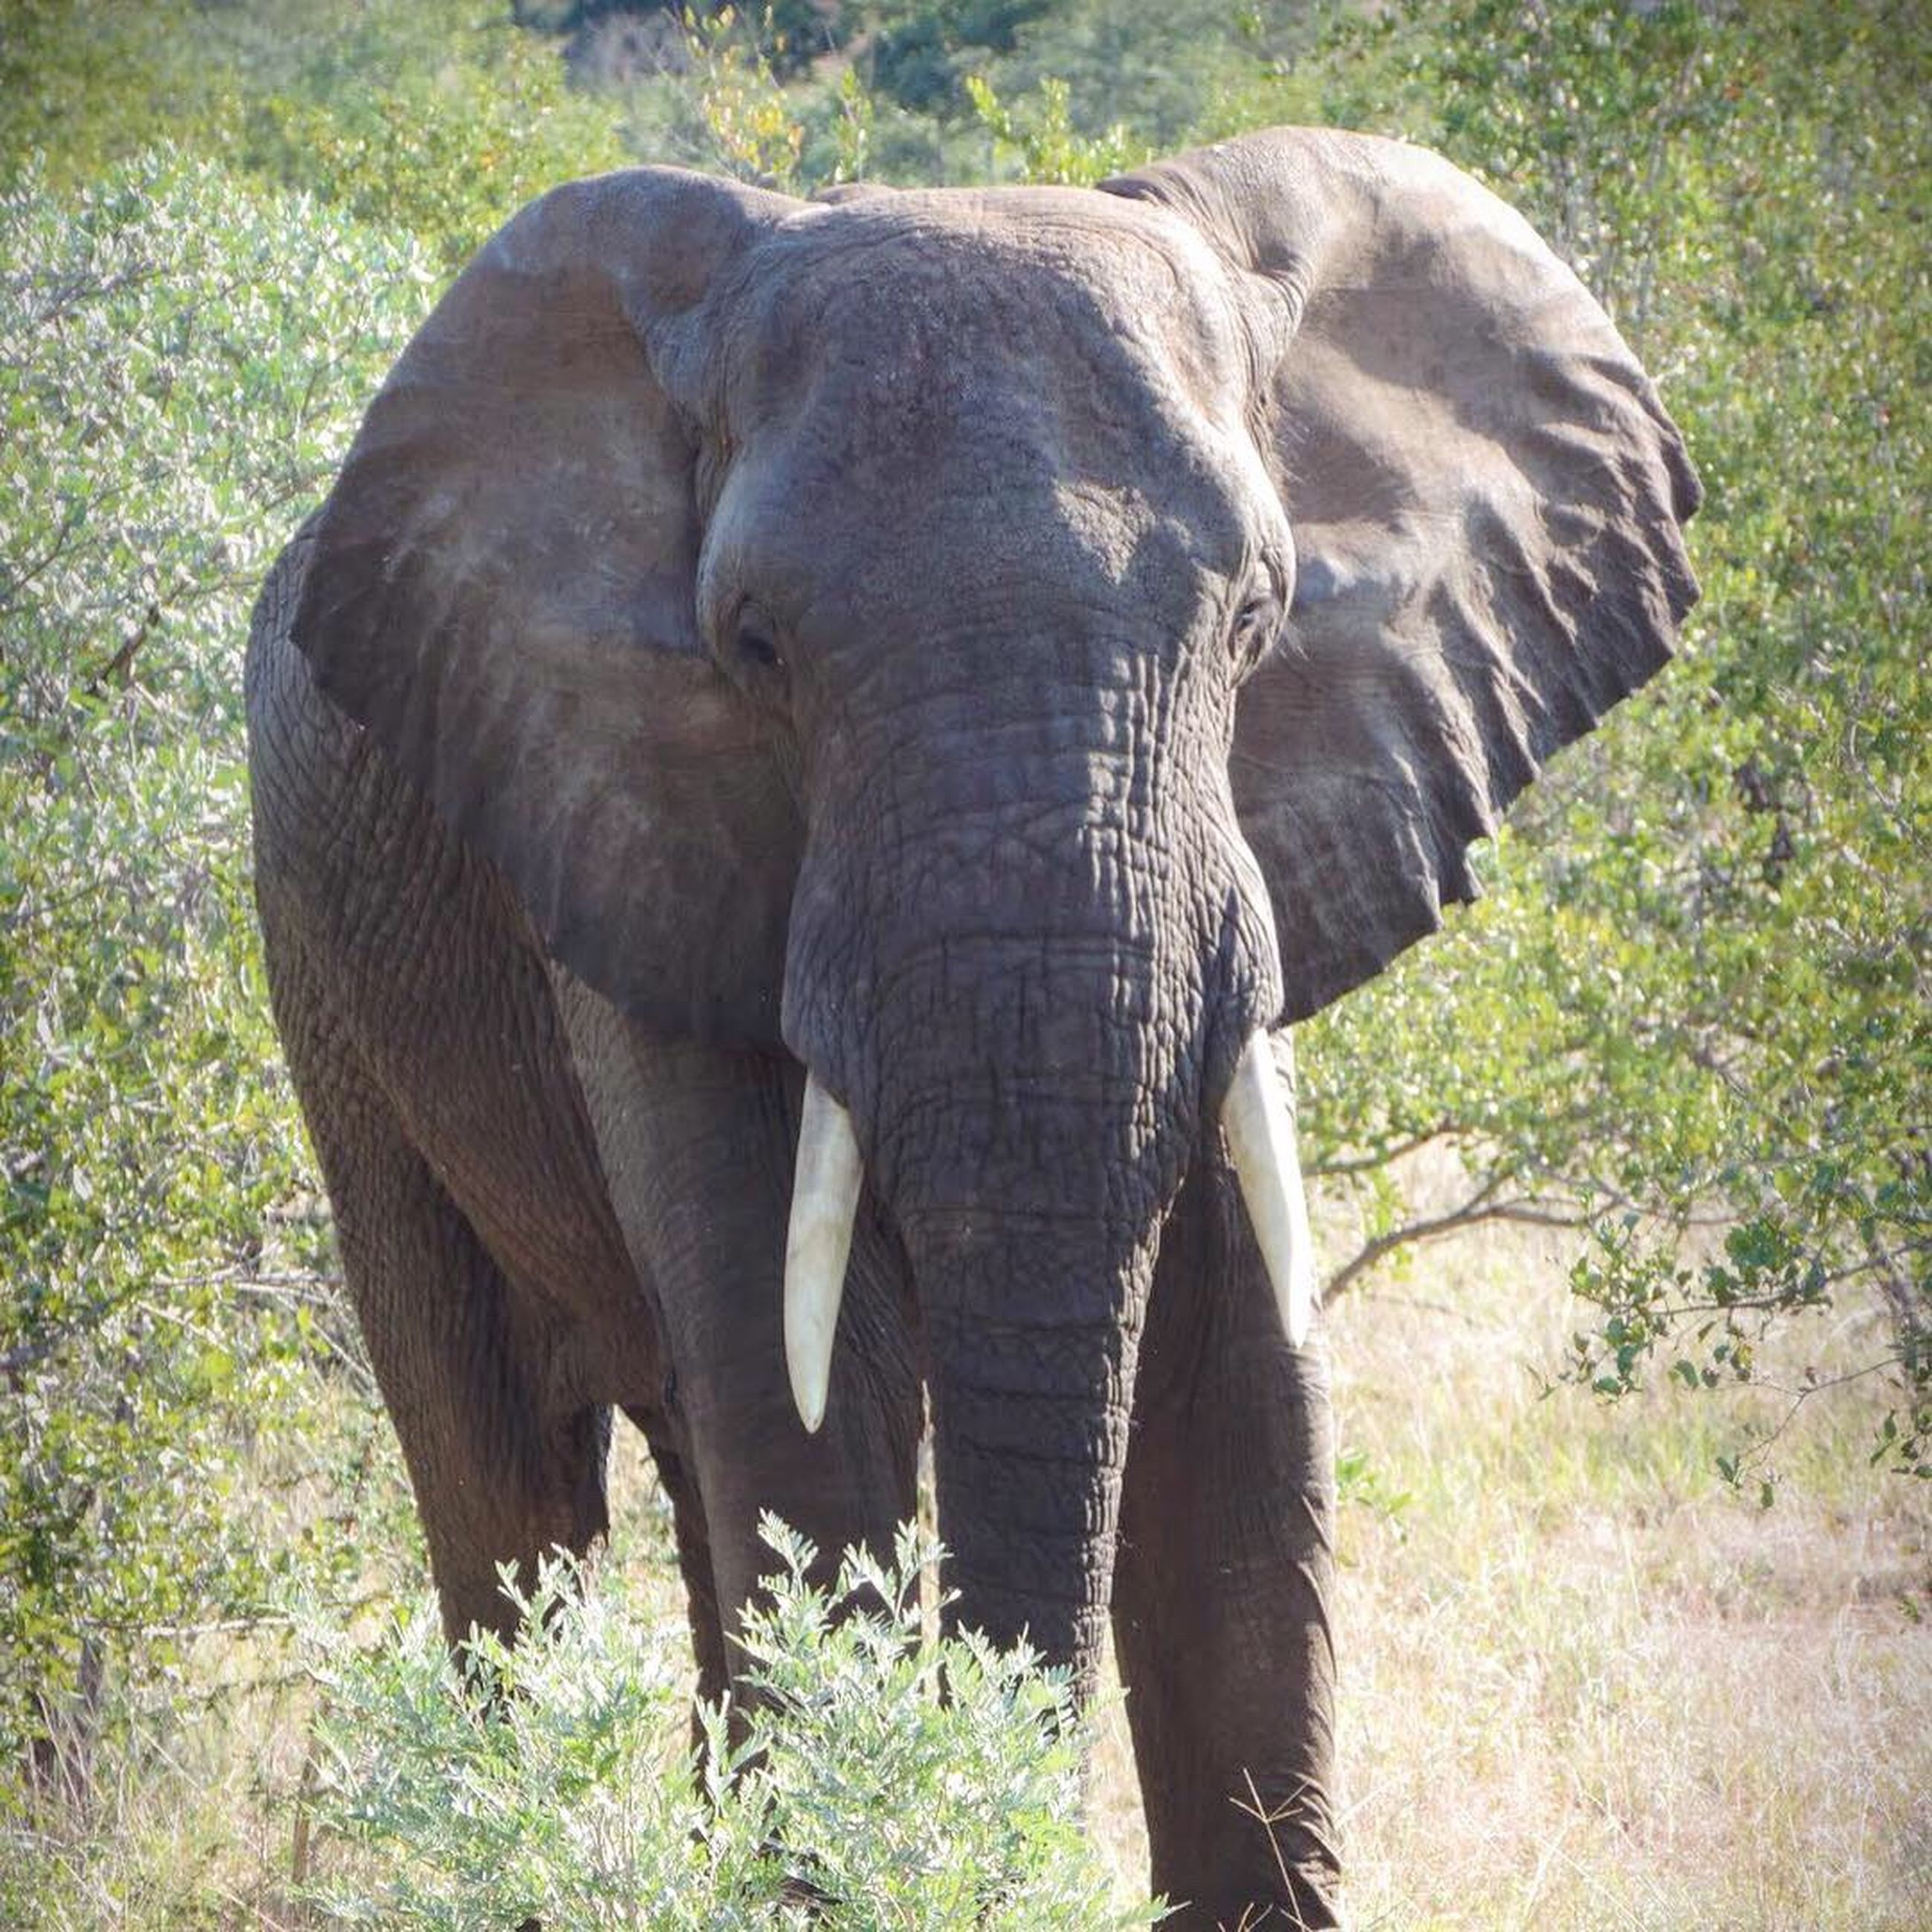 animal themes, animal, elephant, animals in the wild, one animal, animal wildlife, mammal, animal body part, african elephant, plant, no people, grass, front view, day, animal trunk, tusk, vertebrate, safari, forest, outdoors, herbivorous, animal head